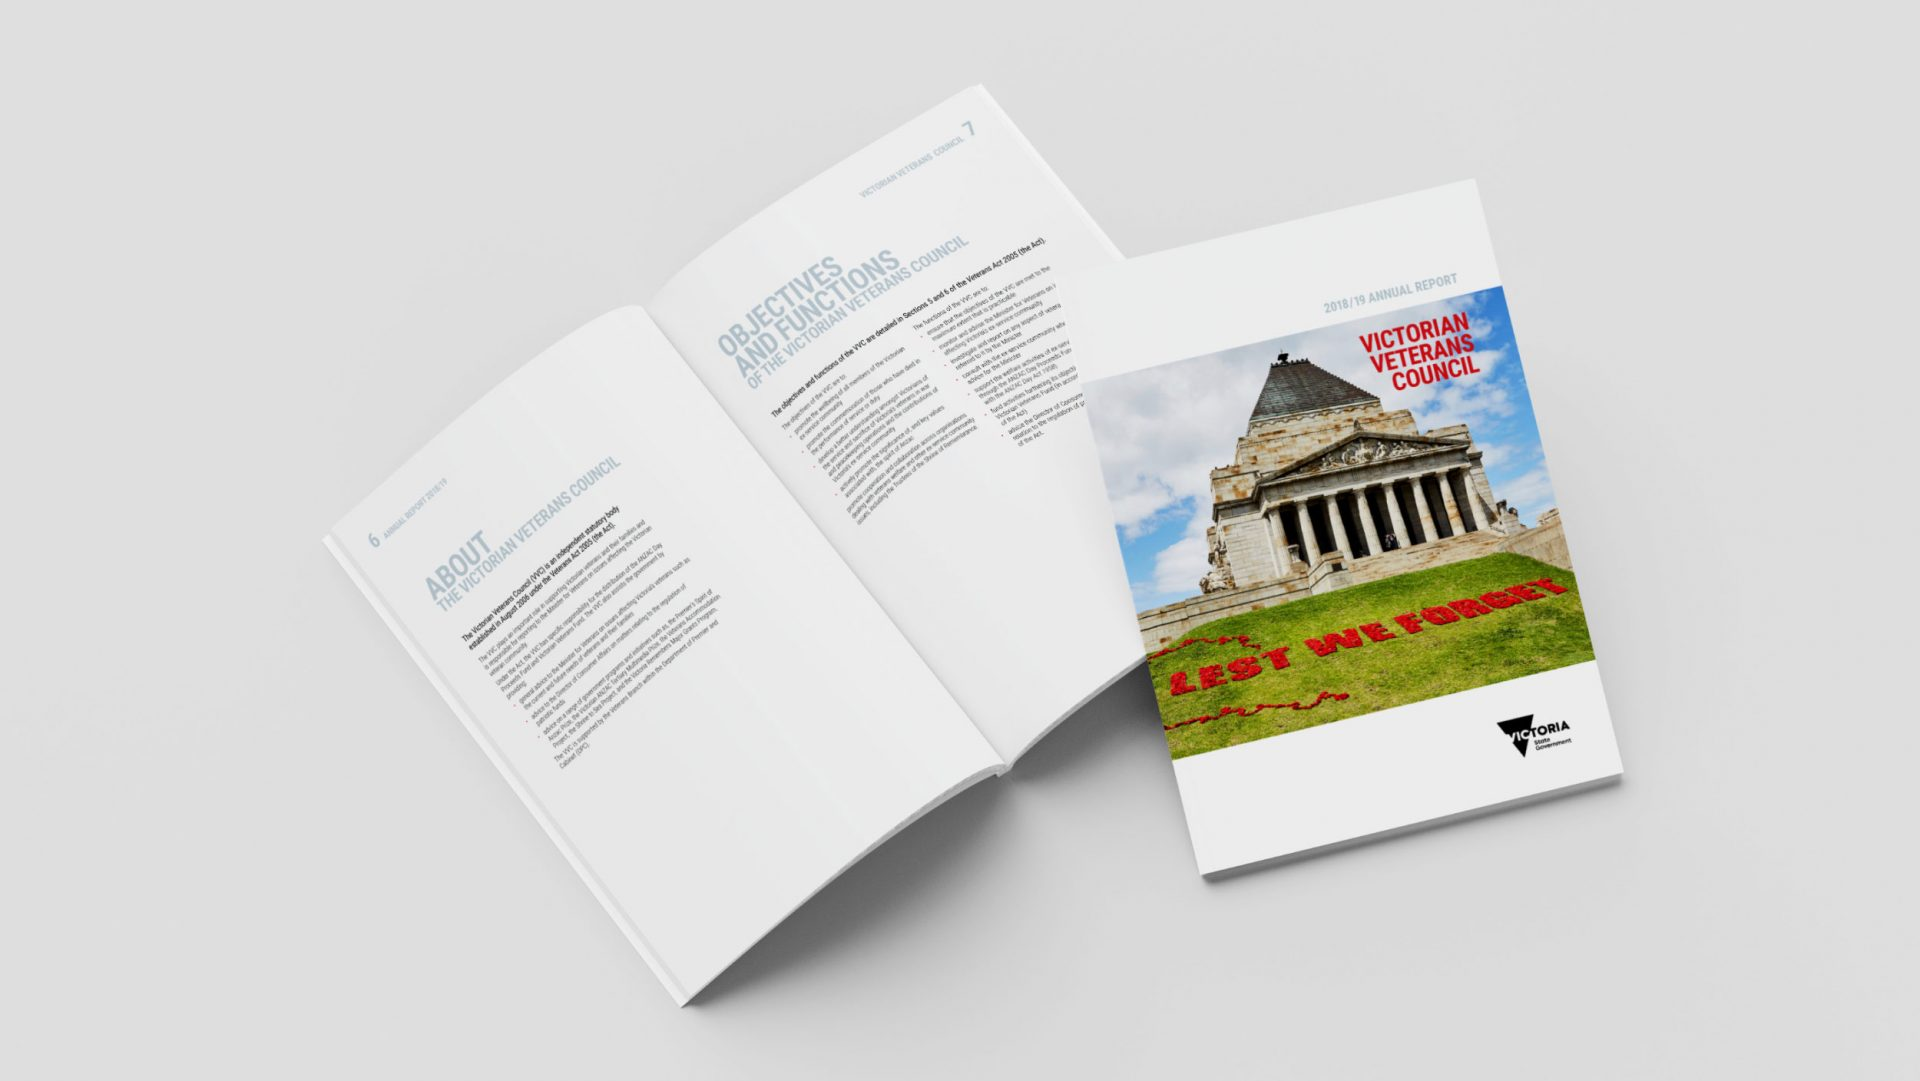 2018/19 Annual Report Cover and spread for the Victorian Veterans Council